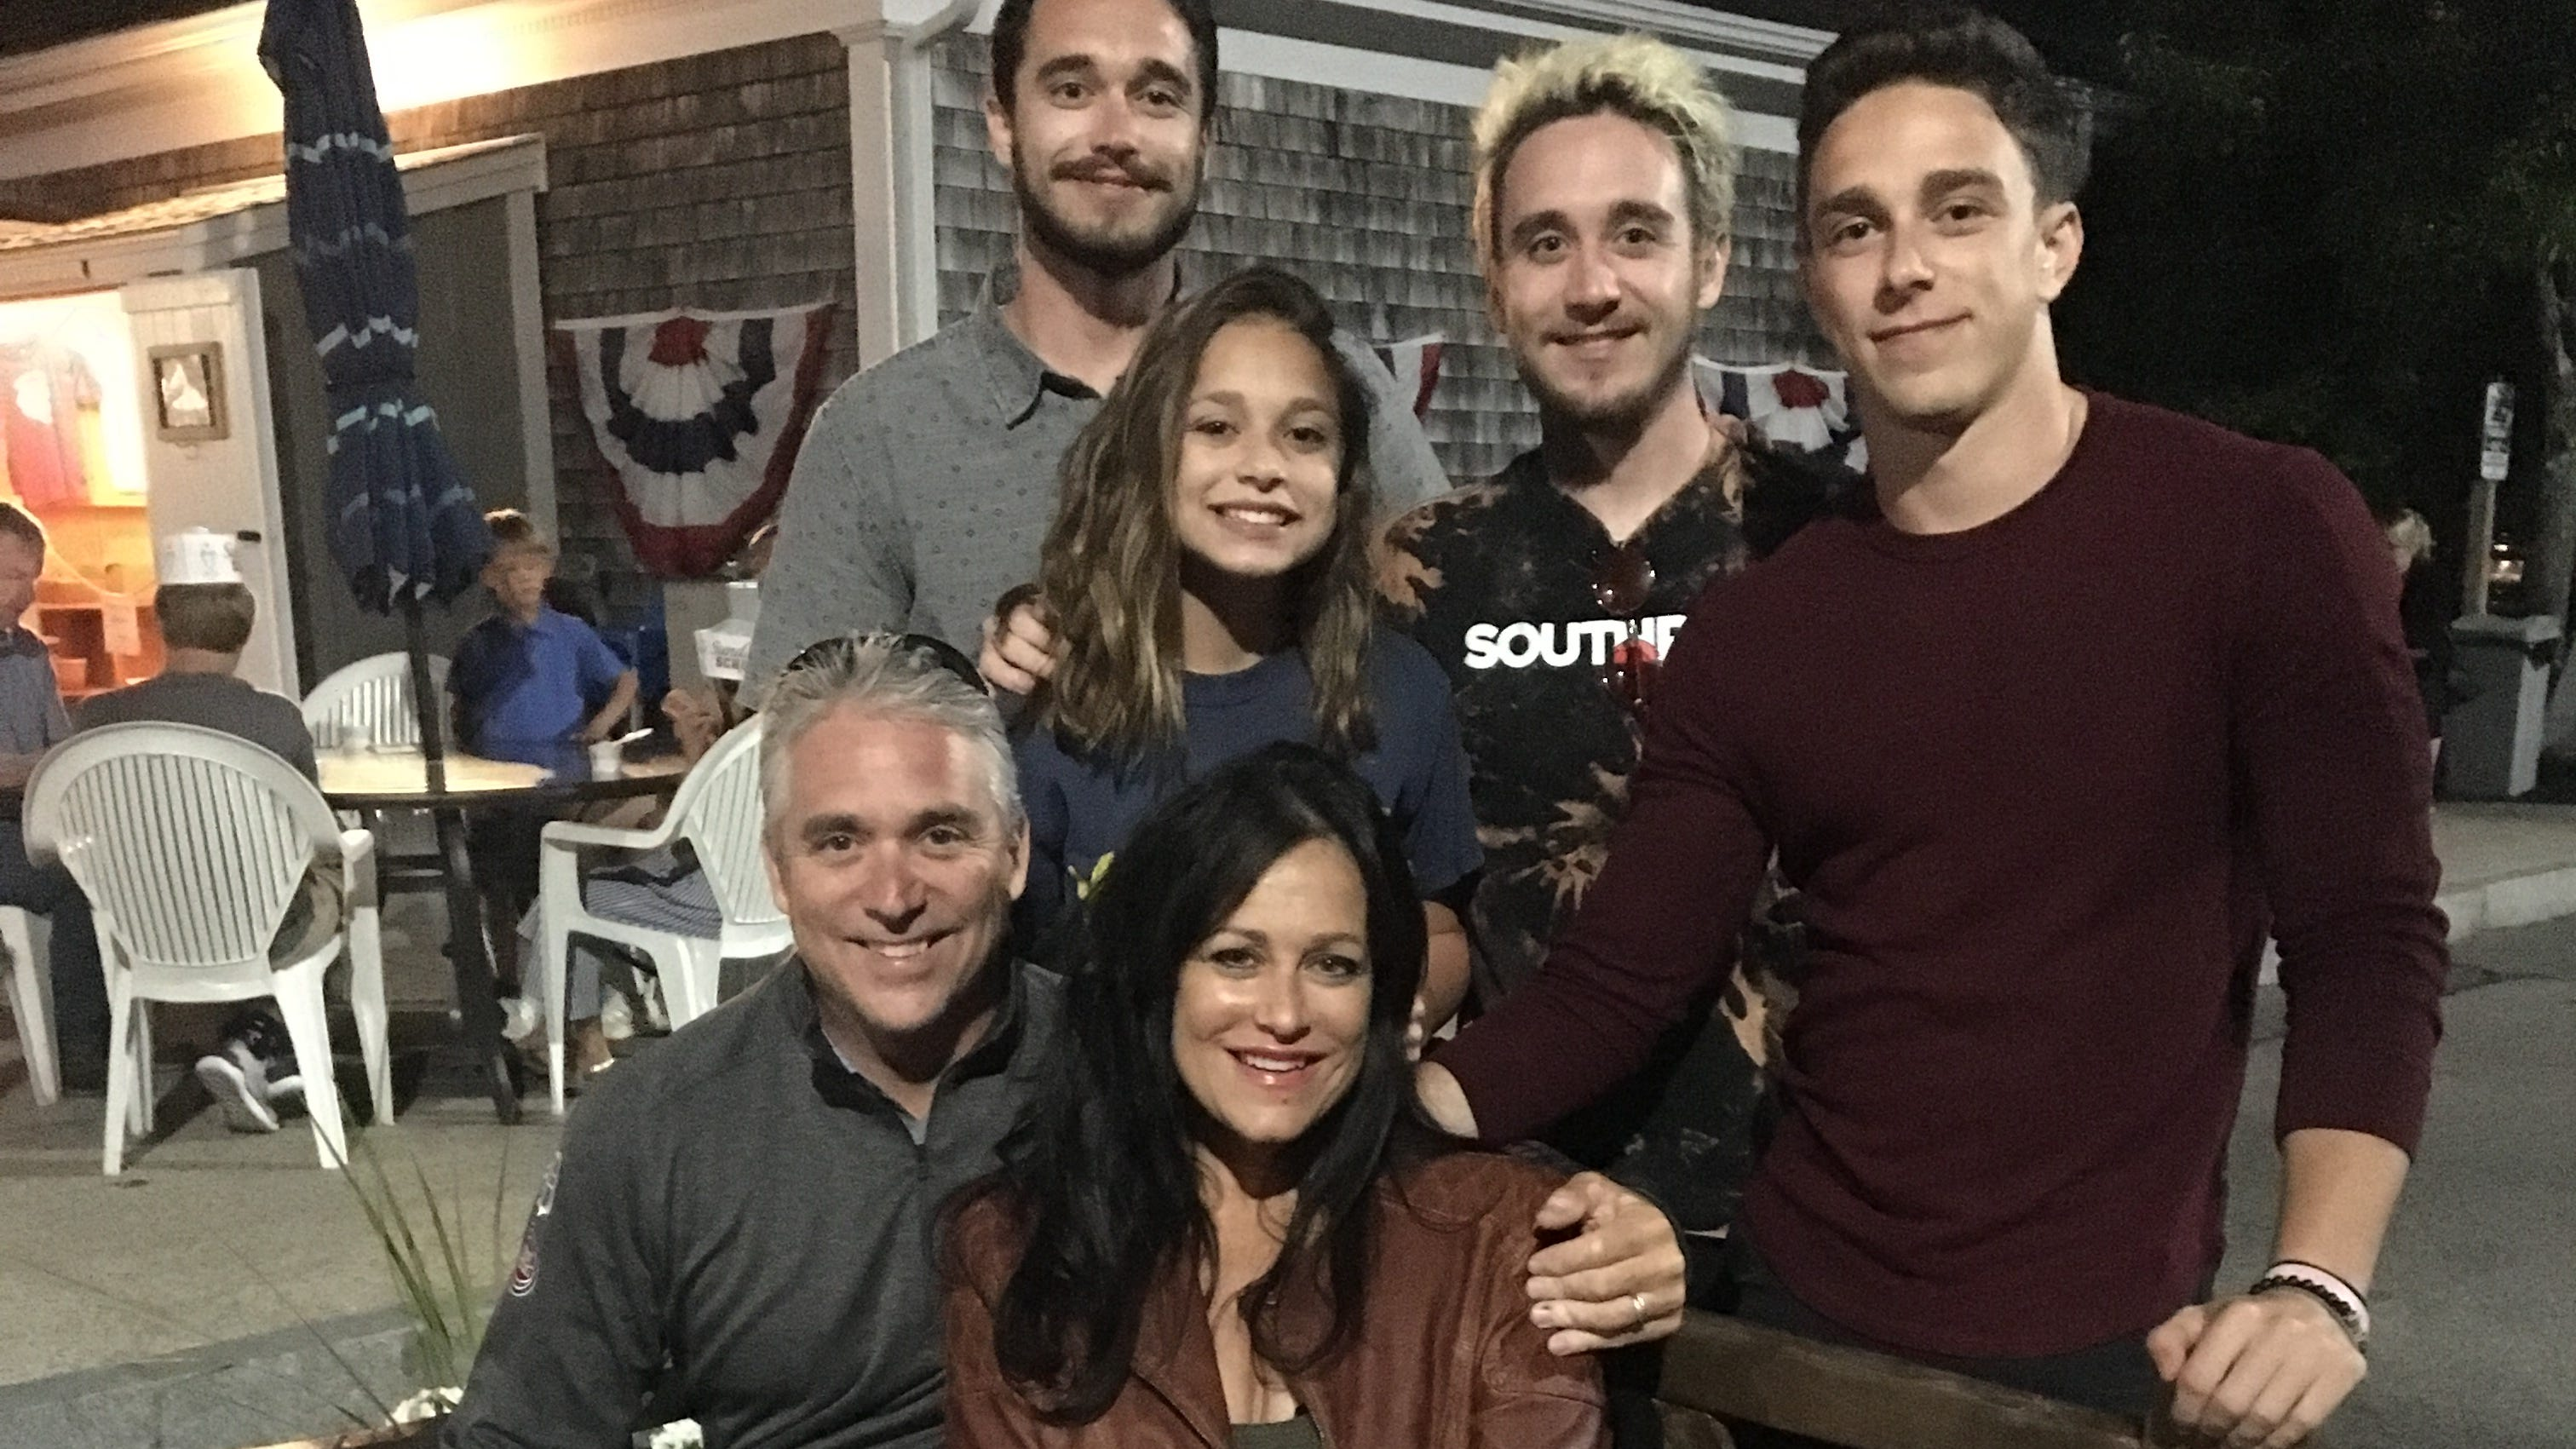 The Shepard family, left to right: Chad, 26, Sean, 23, Scott, 20, Rachel 14, with parents Matt and Lisa.